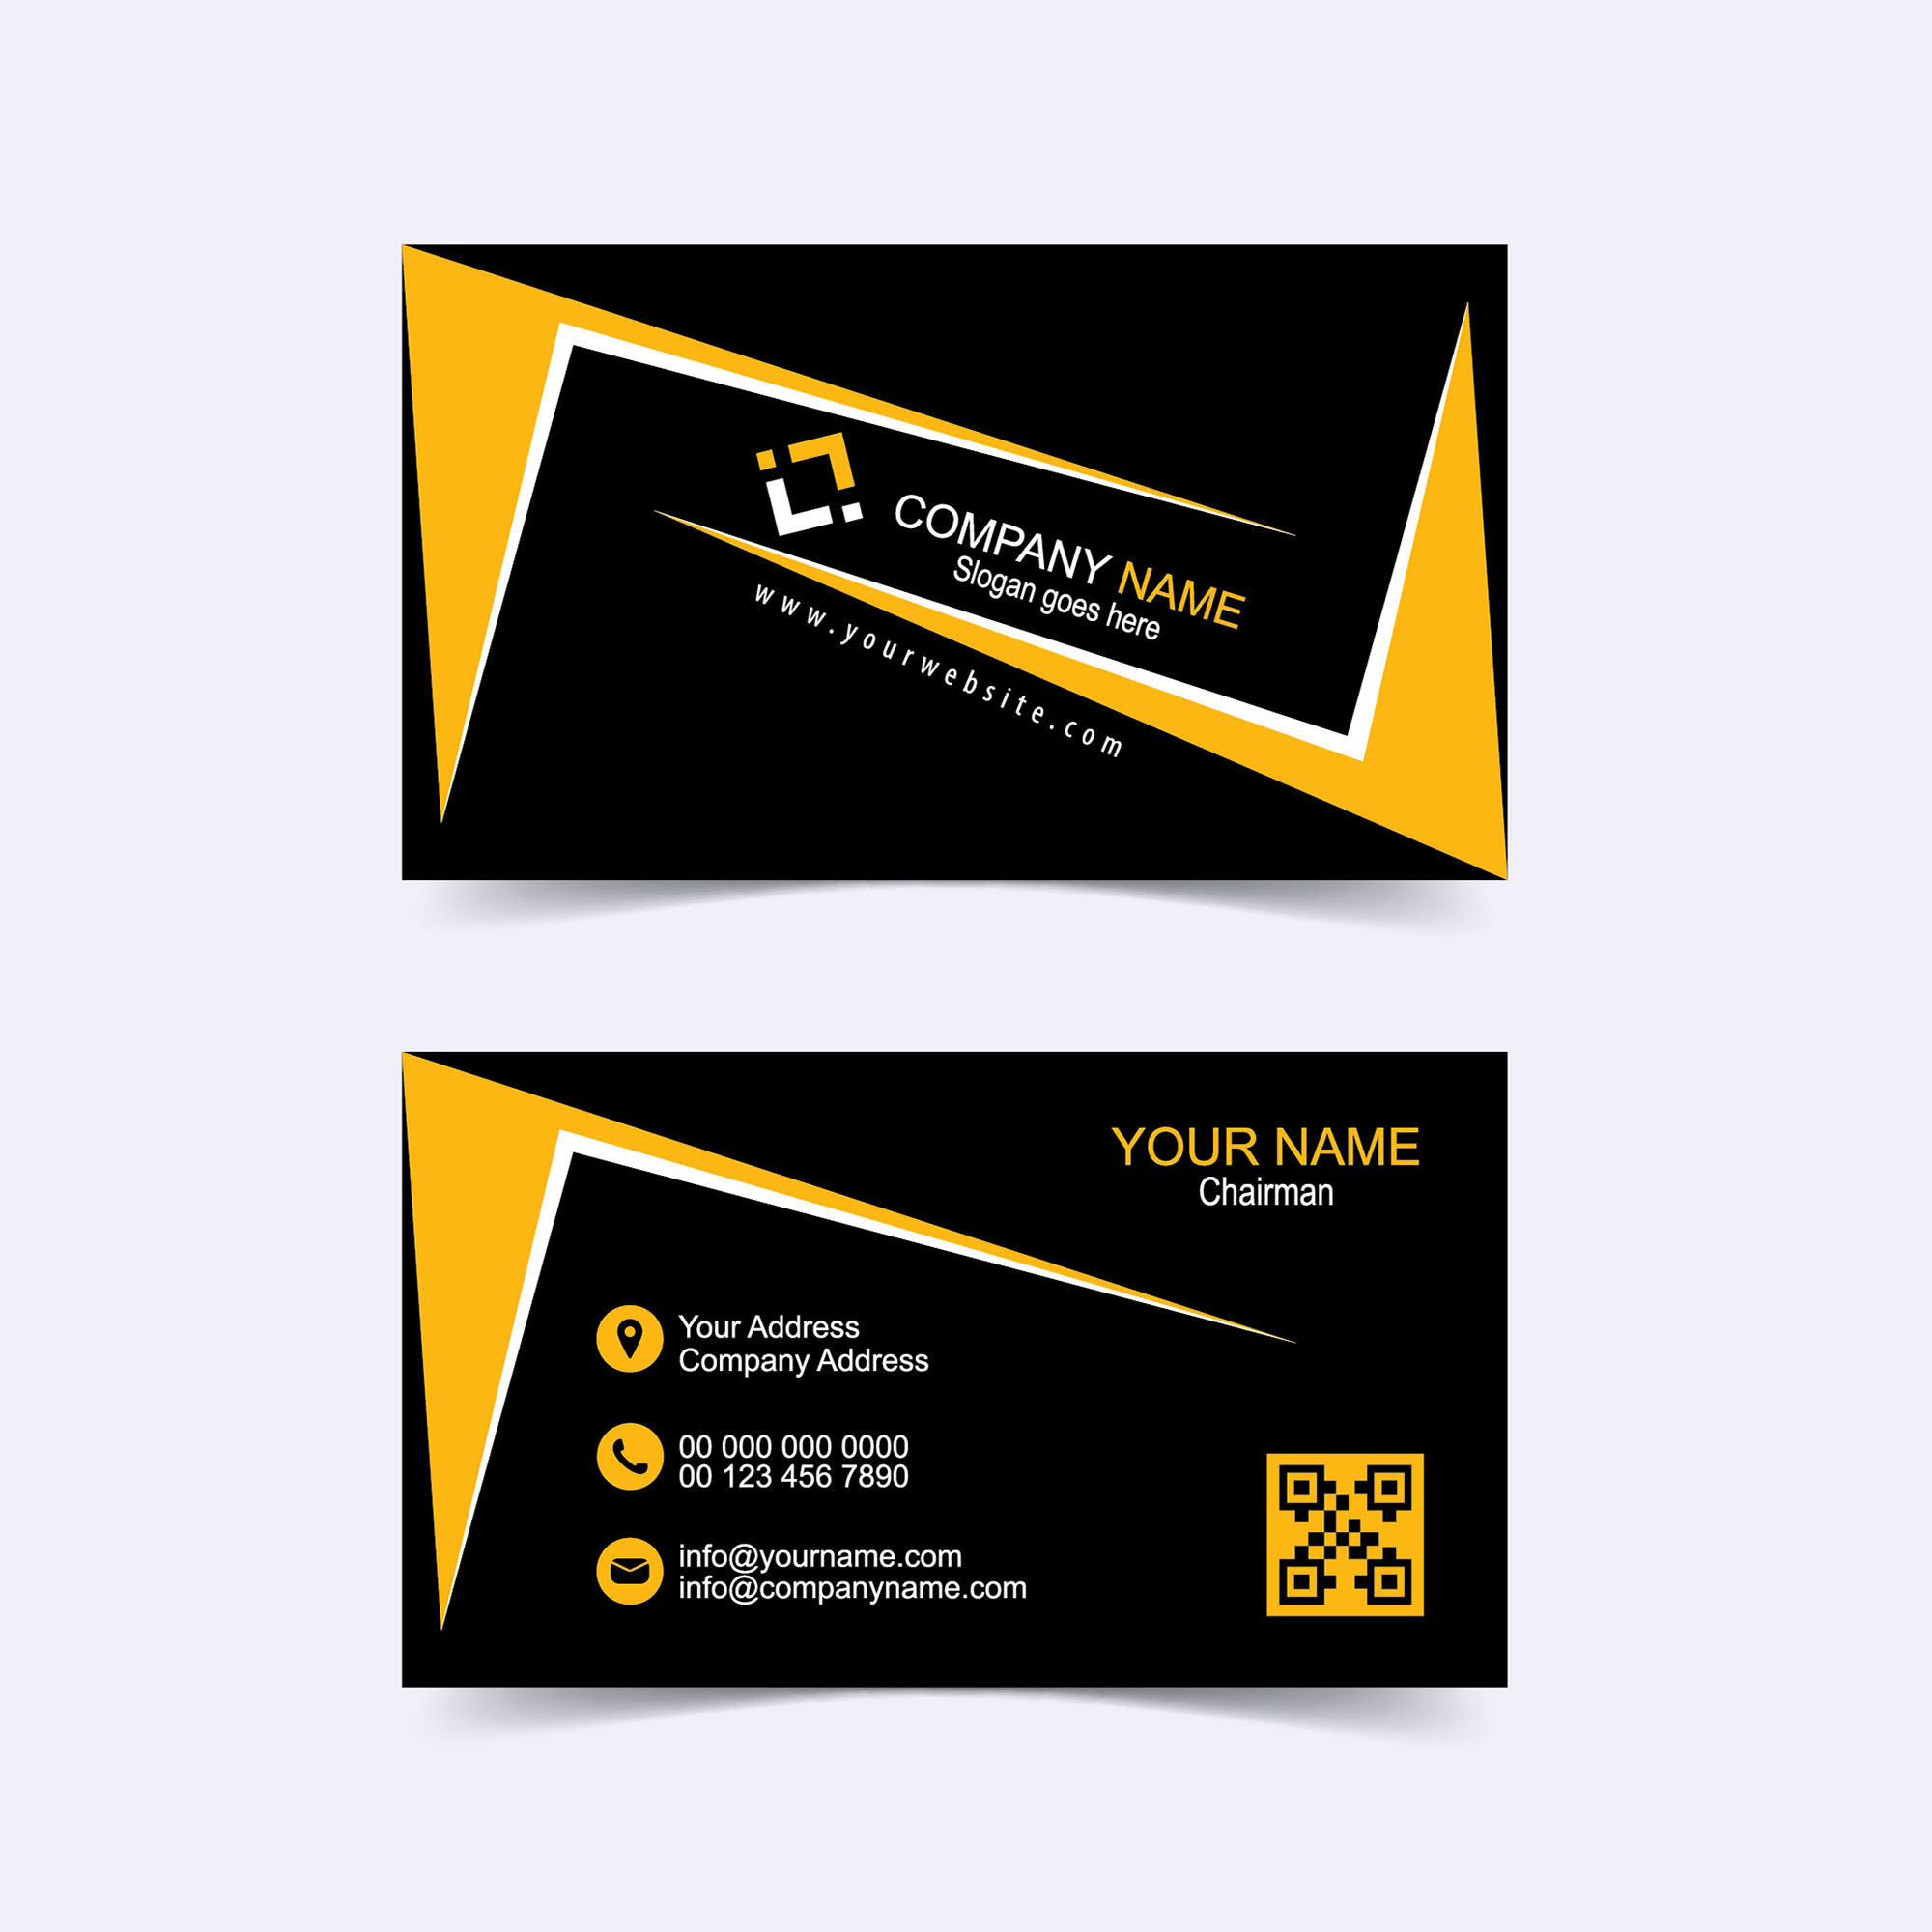 Modern business card template vector free download wisxi business card business cards business card design business card template design templates accmission Gallery